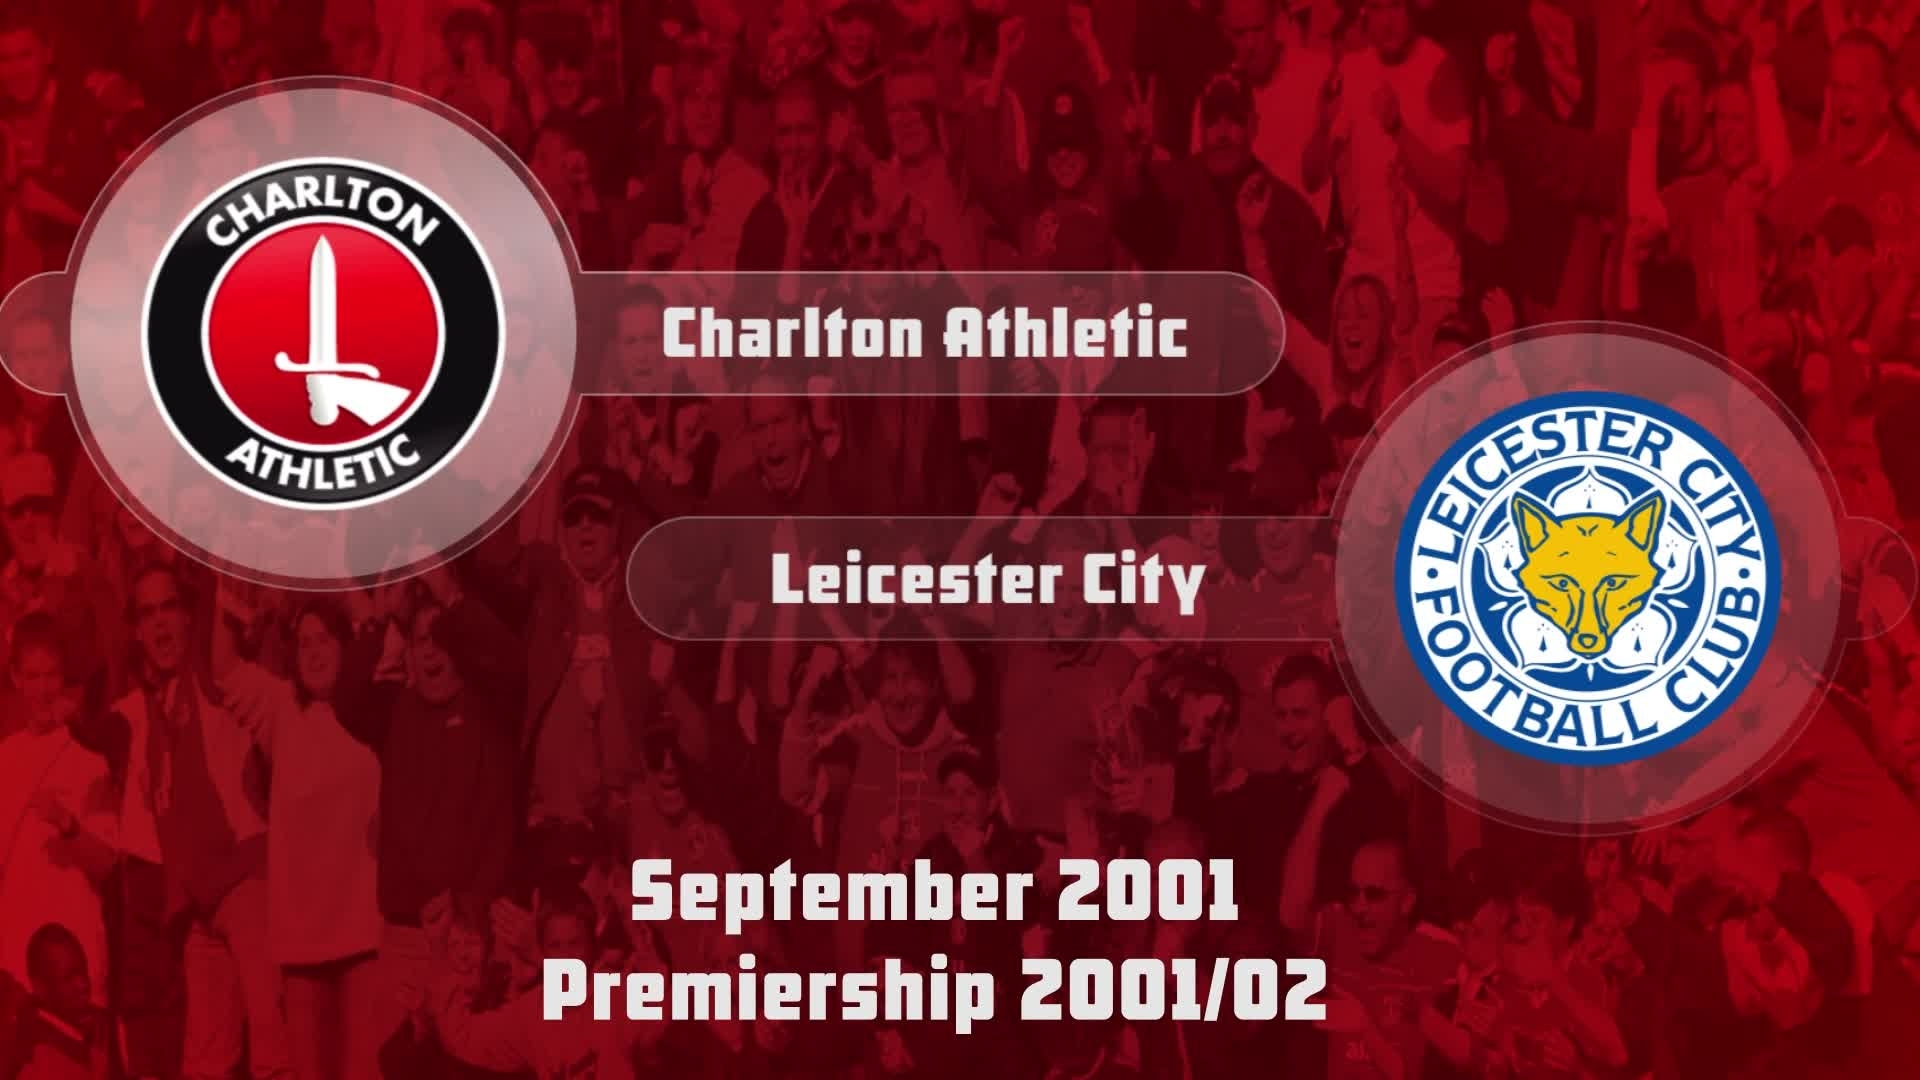 07 HIGHLIGHTS | Charlton 2 Leicester City 0 (Sept 2001)